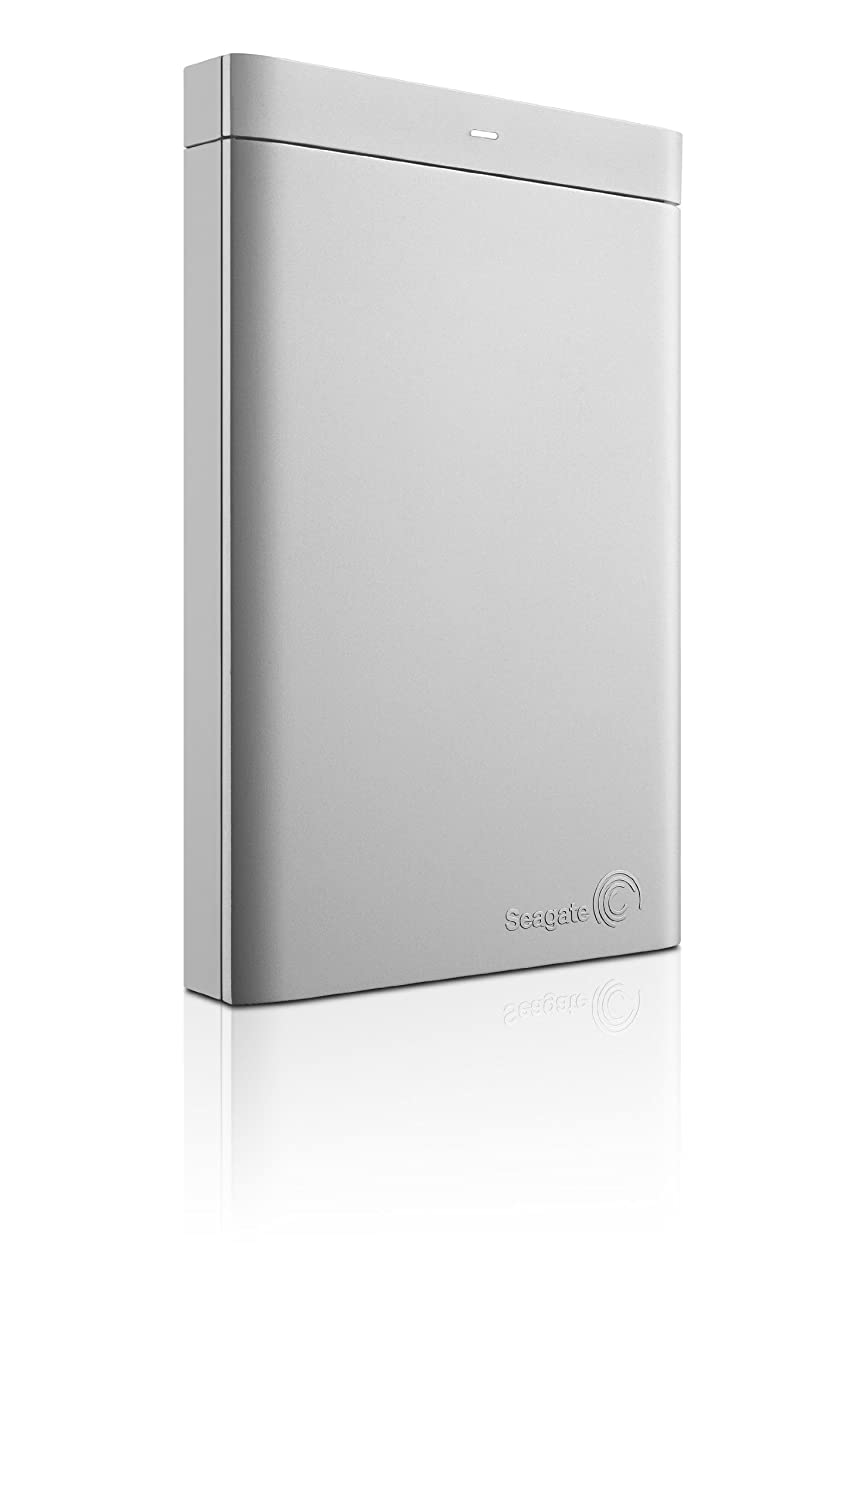 Amazon.com: Seagate Backup Plus 1TB Portable External Hard Drive for Mac USB 2.0 (STBW1000100): Computers & Accessories